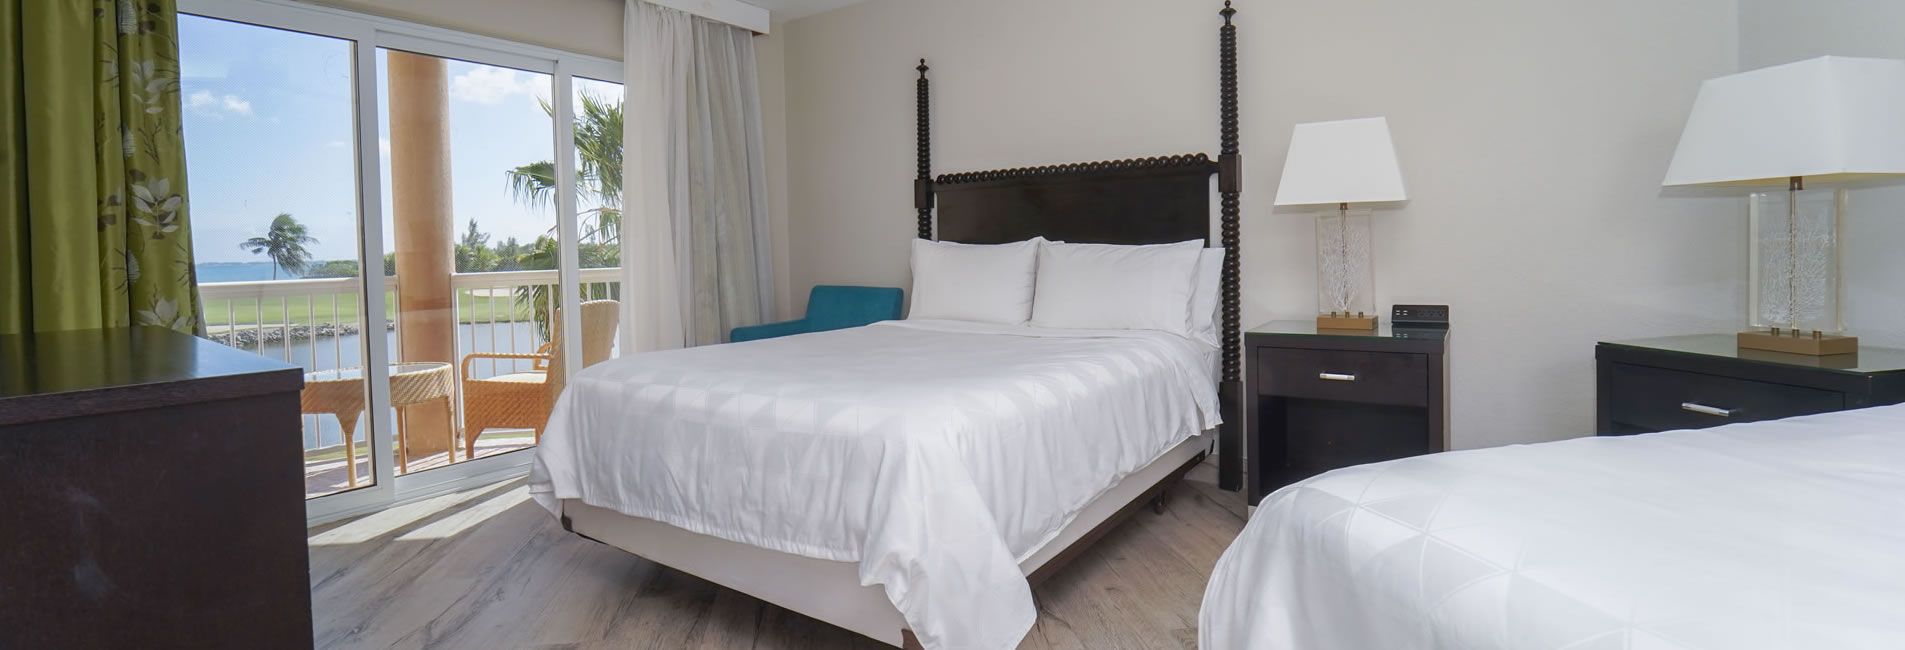 Comfortable hotel rooms in Grand Cayman